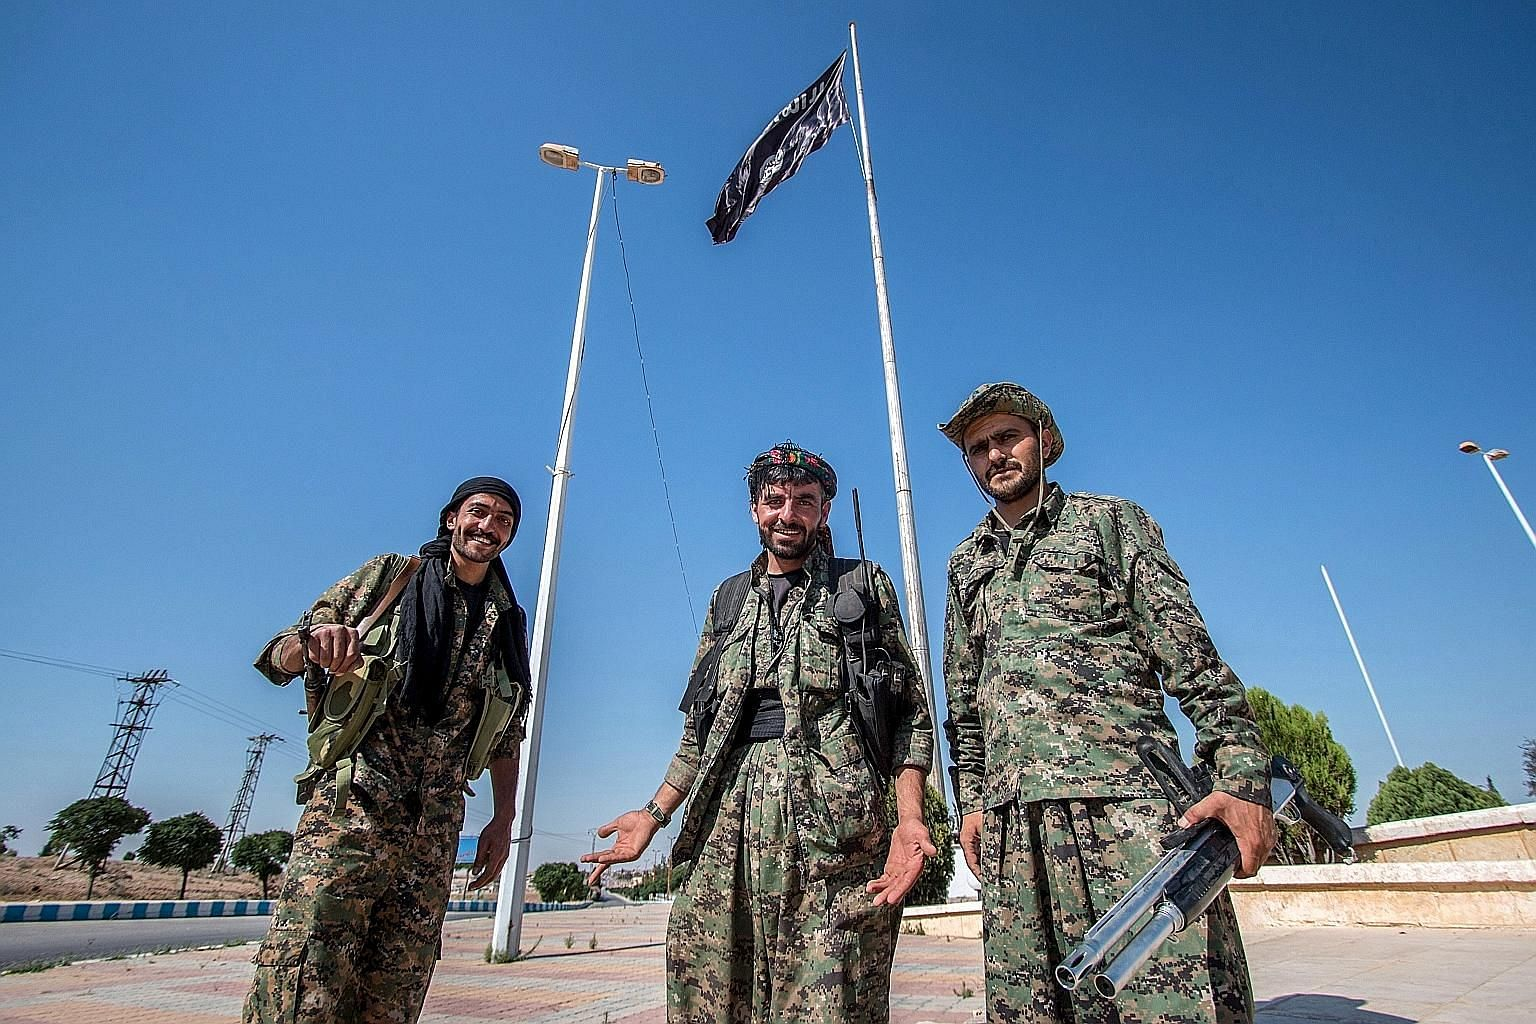 Kurdish People's Protection Units (YPG) fighters in Tal Abyad on the Turkish border. The Kurds retook the key hub this month, one in a string of victories over the jihadists who have been sweeping through the area.